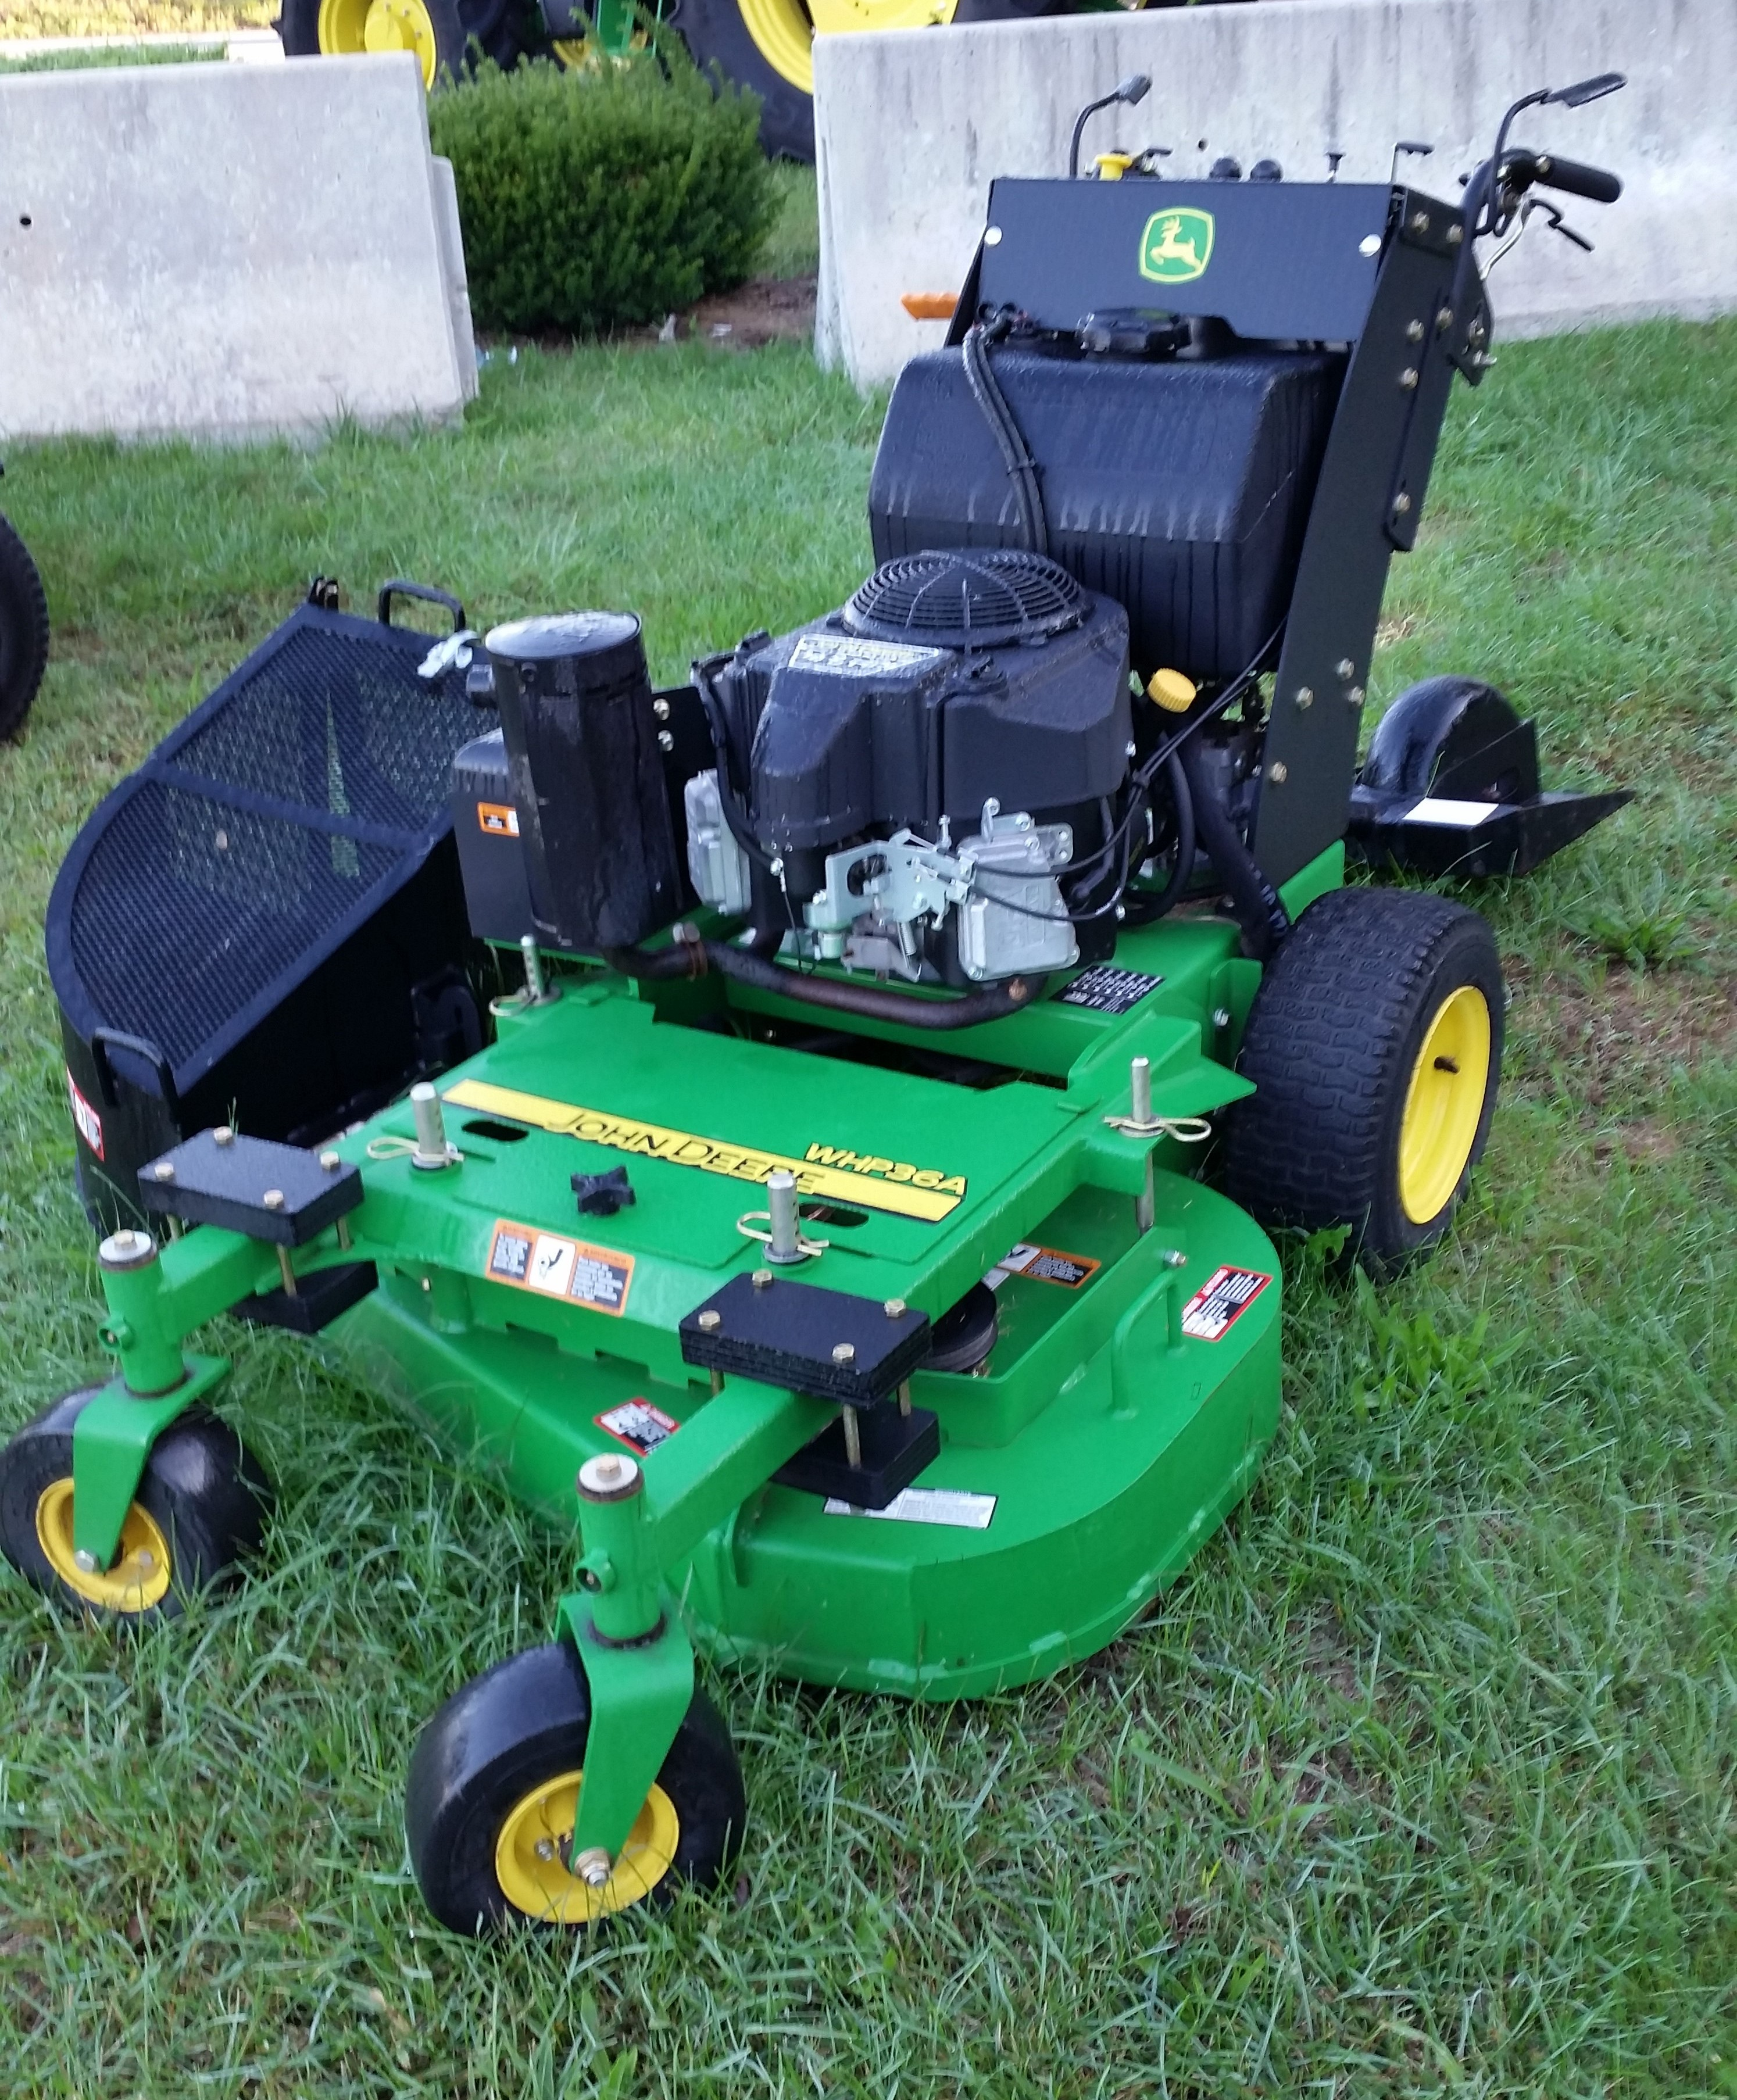 JD WH36A COMMERCIAL WALK BEHIND MOWER | Smith's Implements